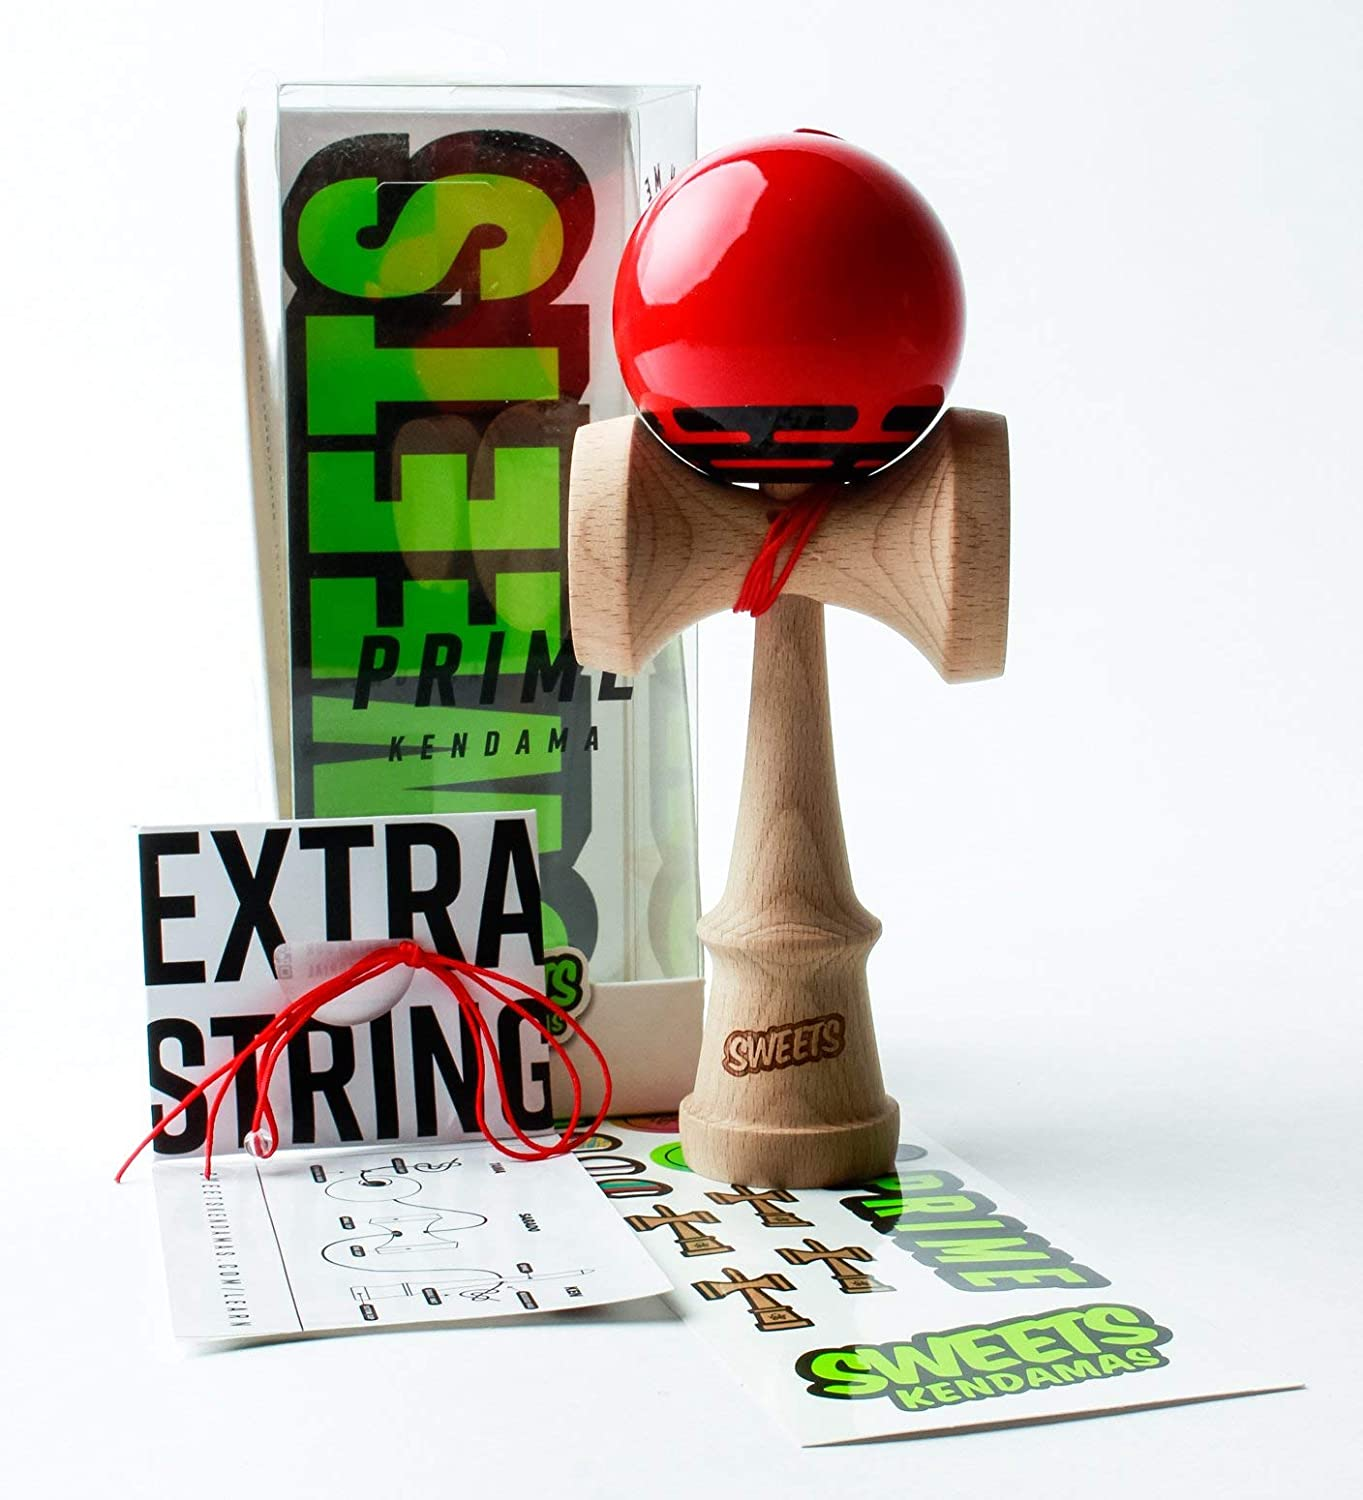 Sweets Kendamas Radar Prime Kendama - Sticky Paint, Perfect for Beginners, Extra String Accessory Gift Bundle (Red)